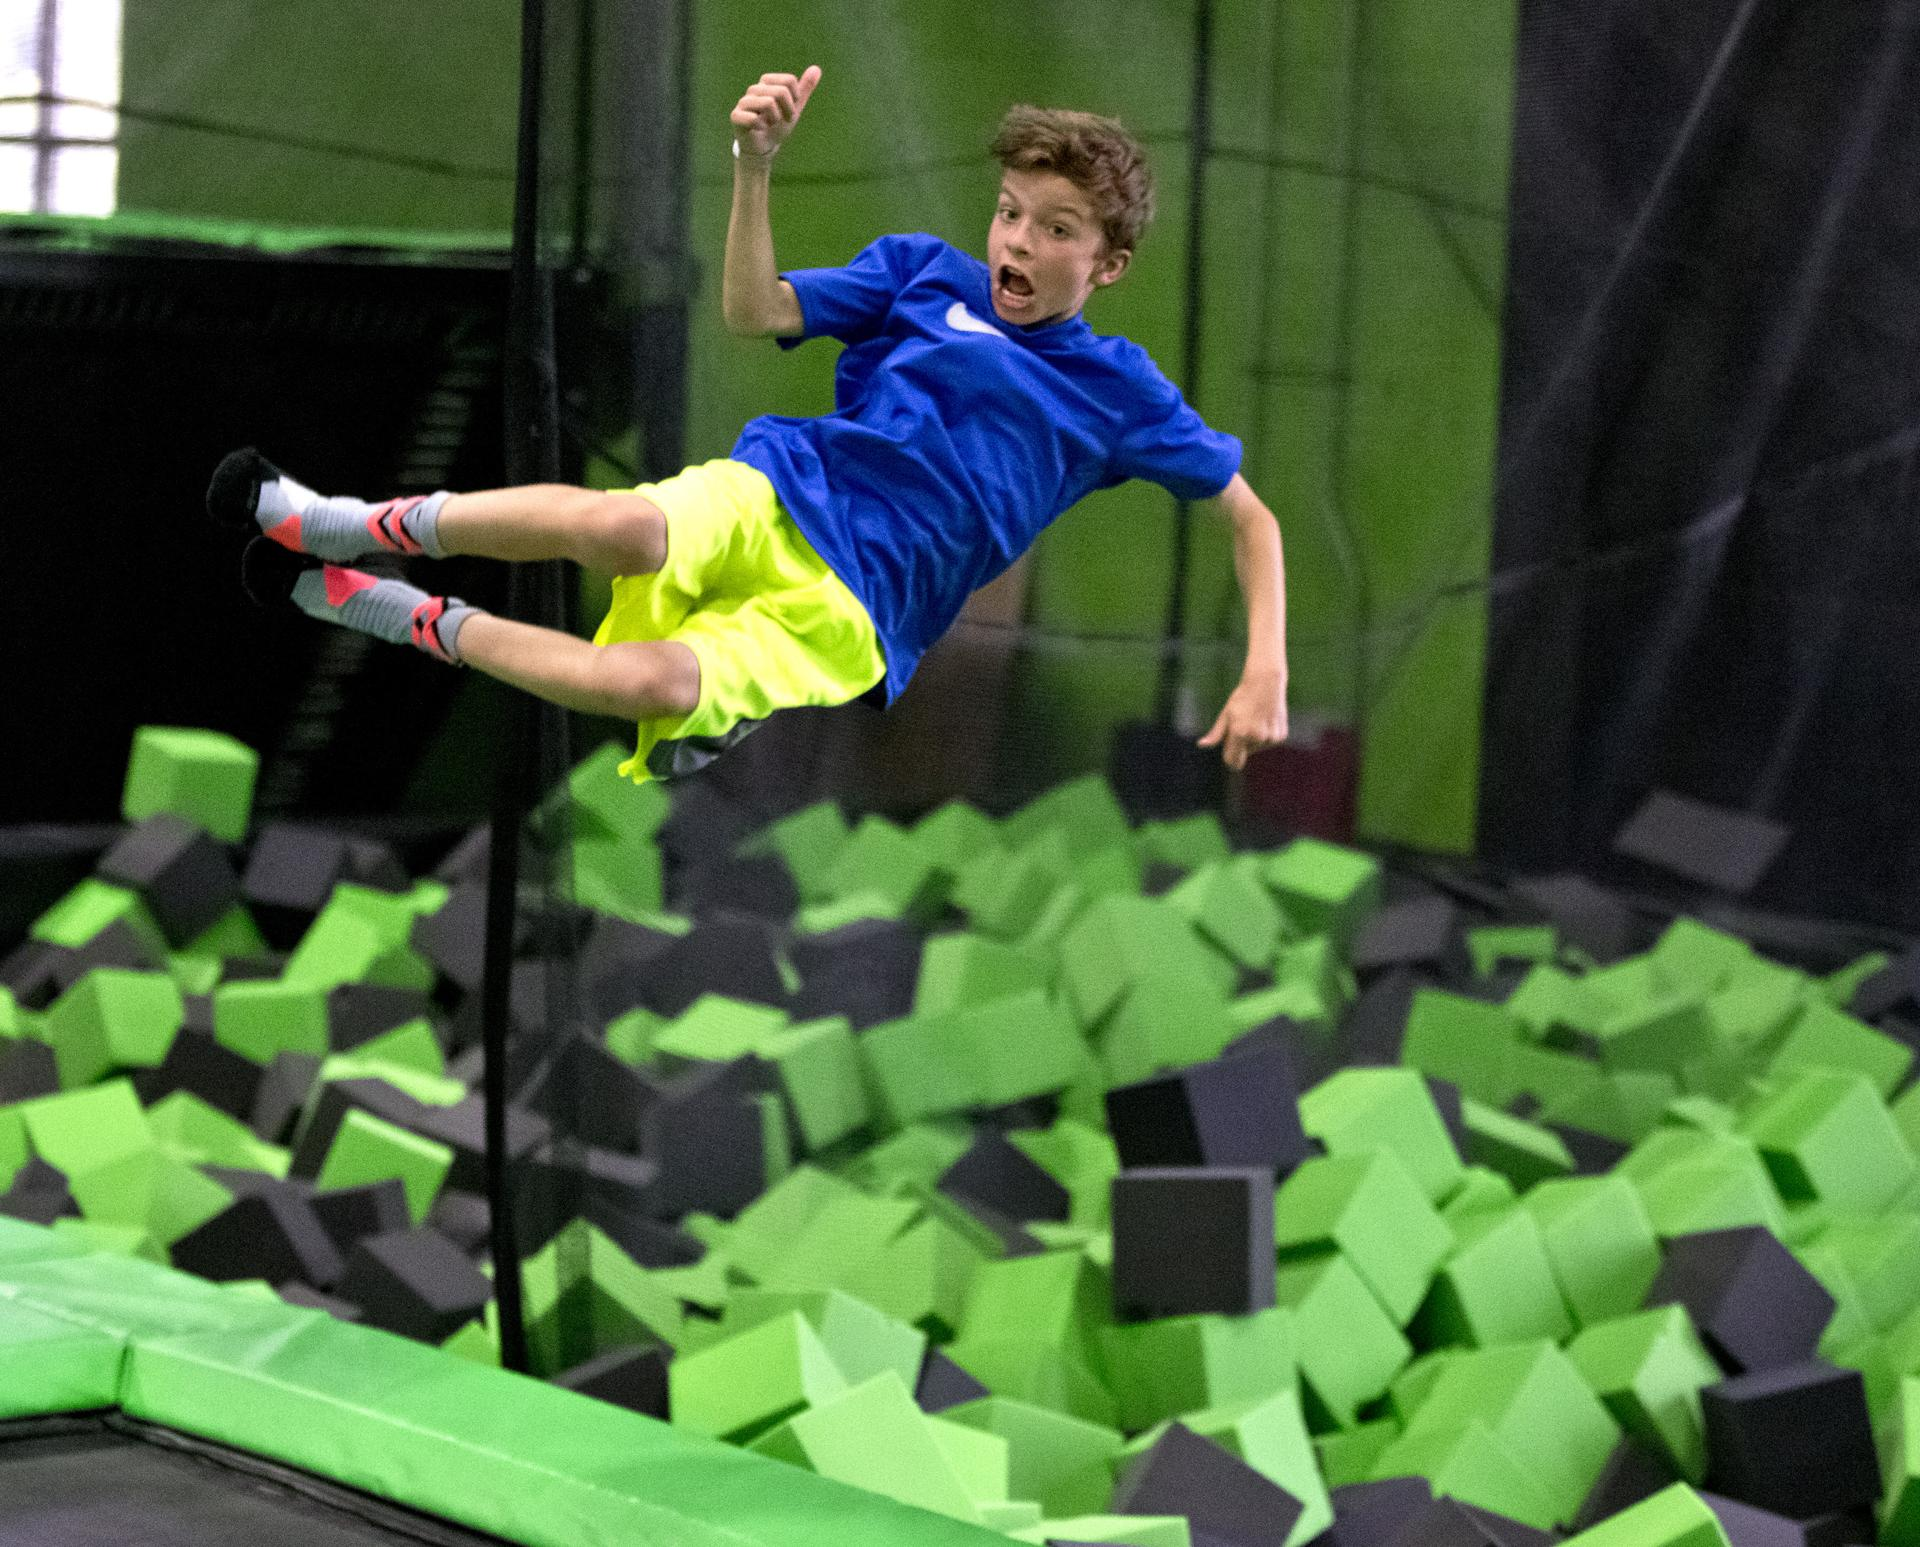 Former Patriot Ty Law in business with a bounce Indoor Trampoline park